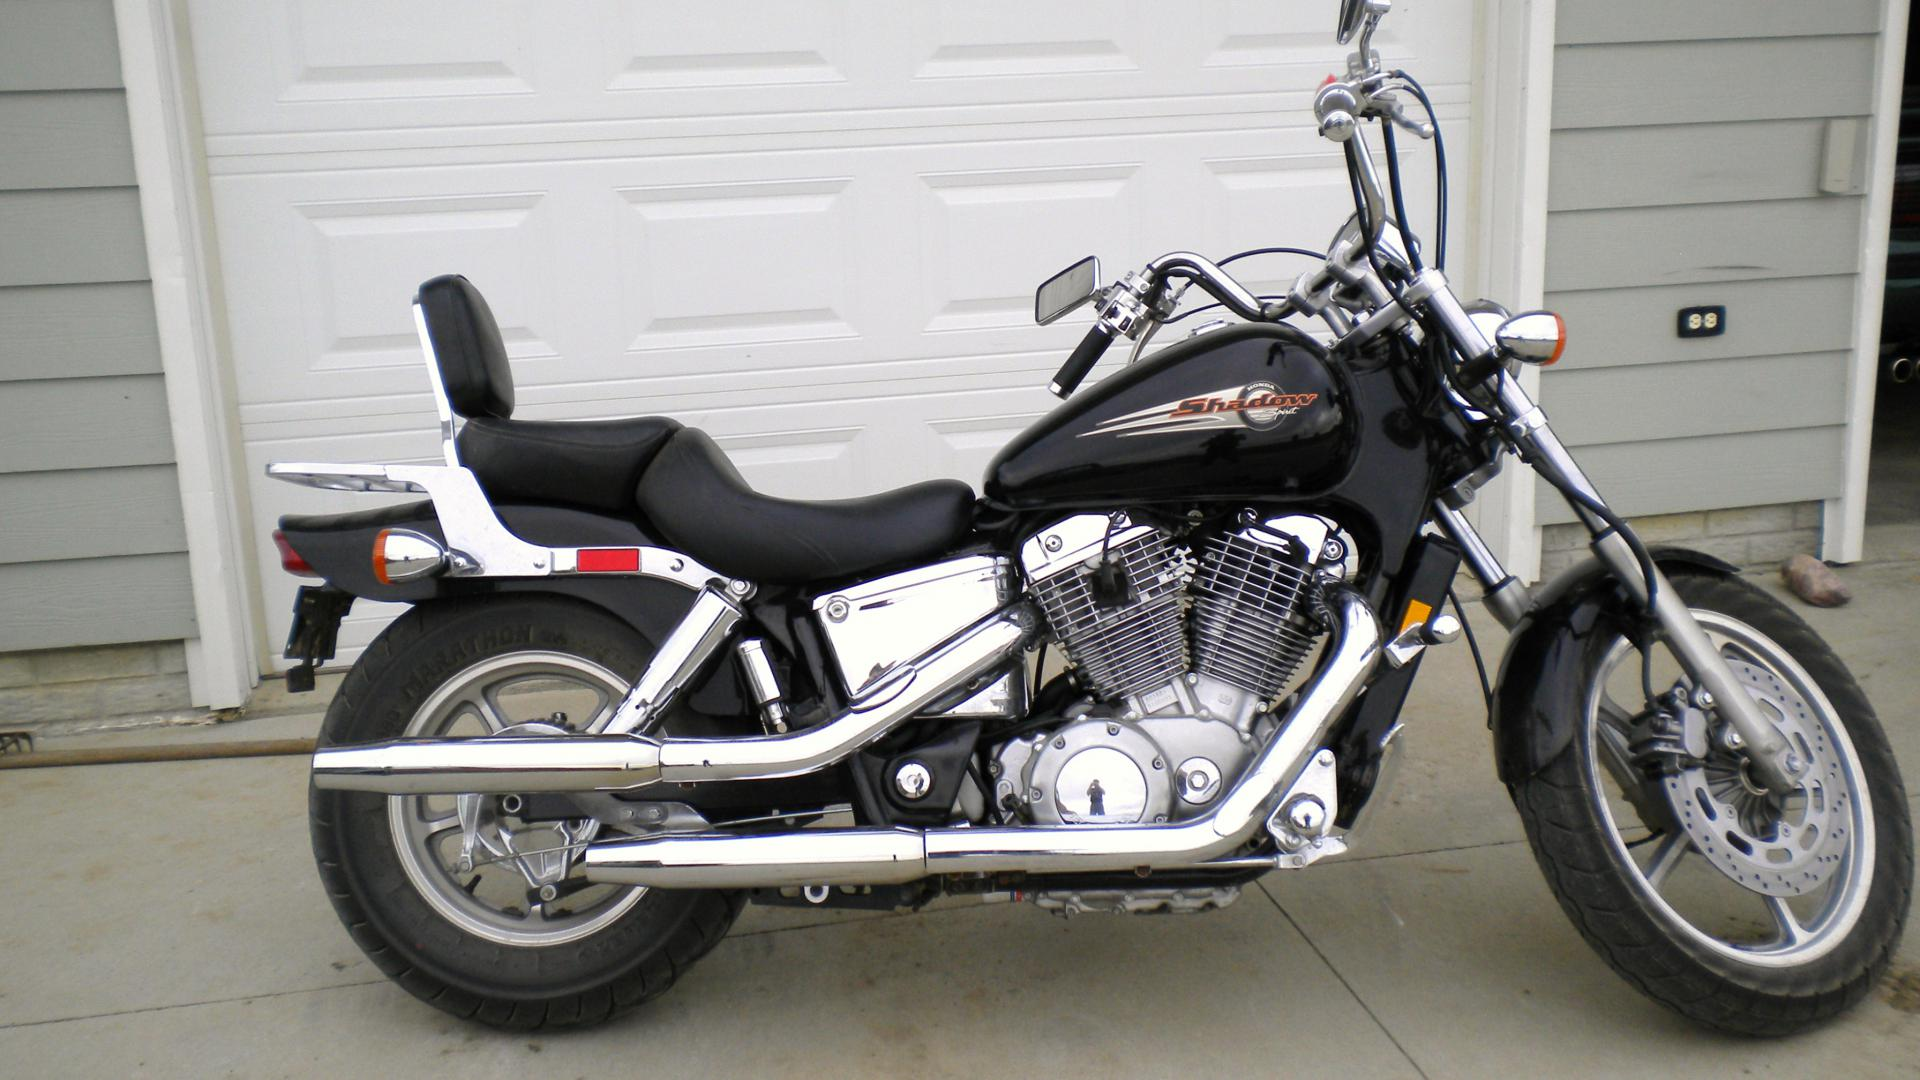 the sport bike and bought a shadow spirit 1100 honda shadow the sport bike and bought a shadow spirit 1100 honda shadow